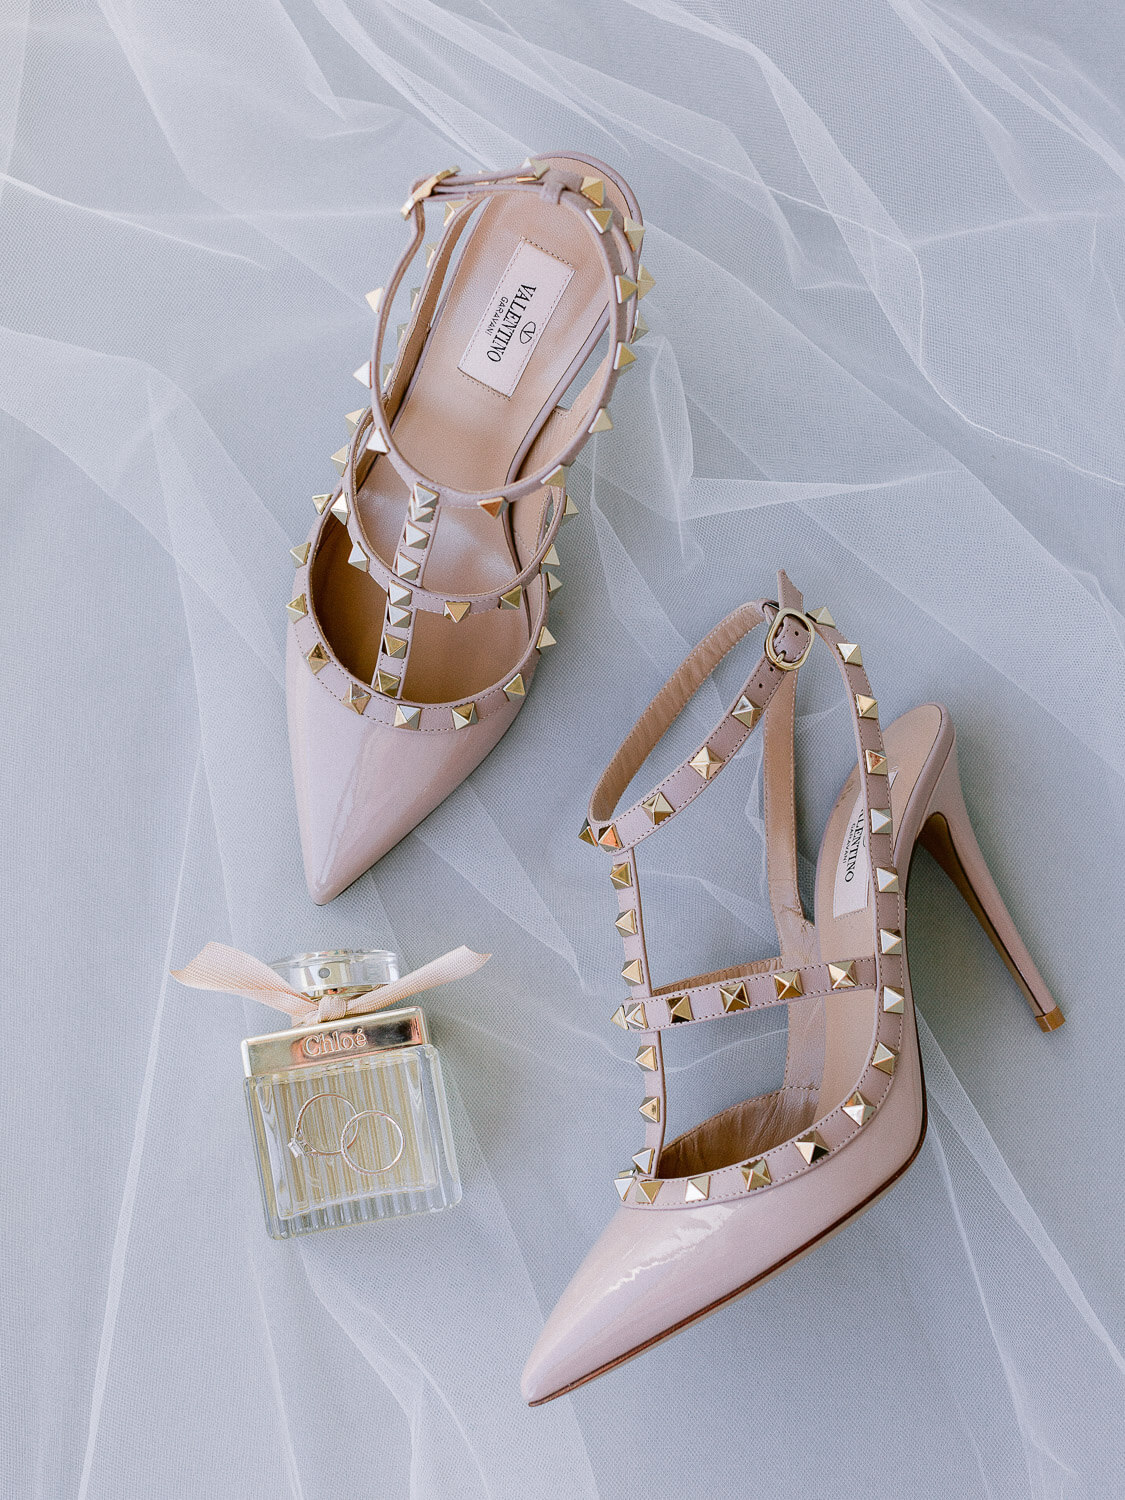 Valentino rockstud pumps in Poudre close-up for a destination wedding in the Algarve by Portugal Wedding Photographer